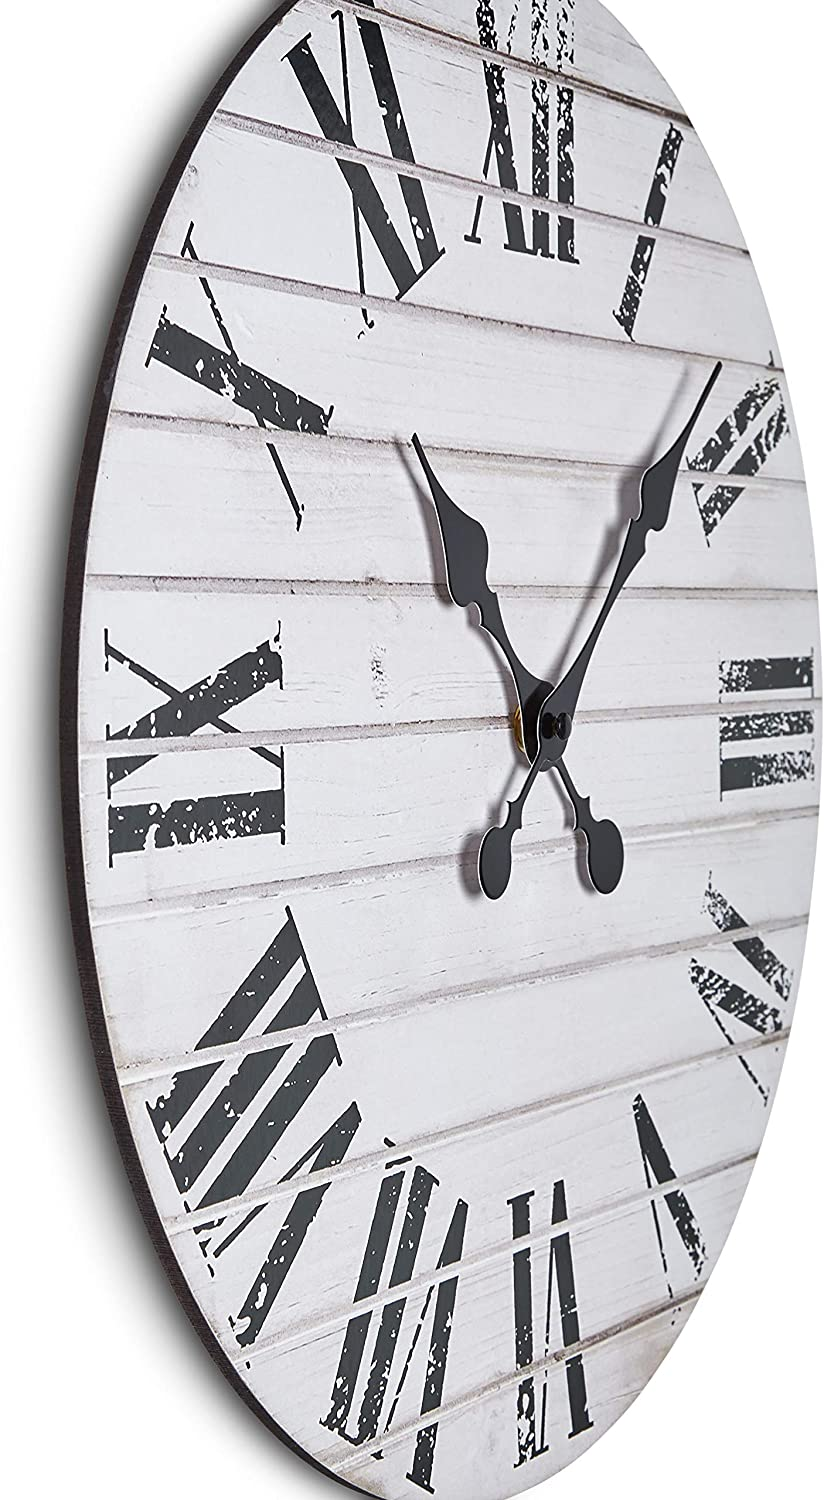 Rustic Off White Wall Clock, Single Piece Fiberboard, 16 inches, Silent Tick